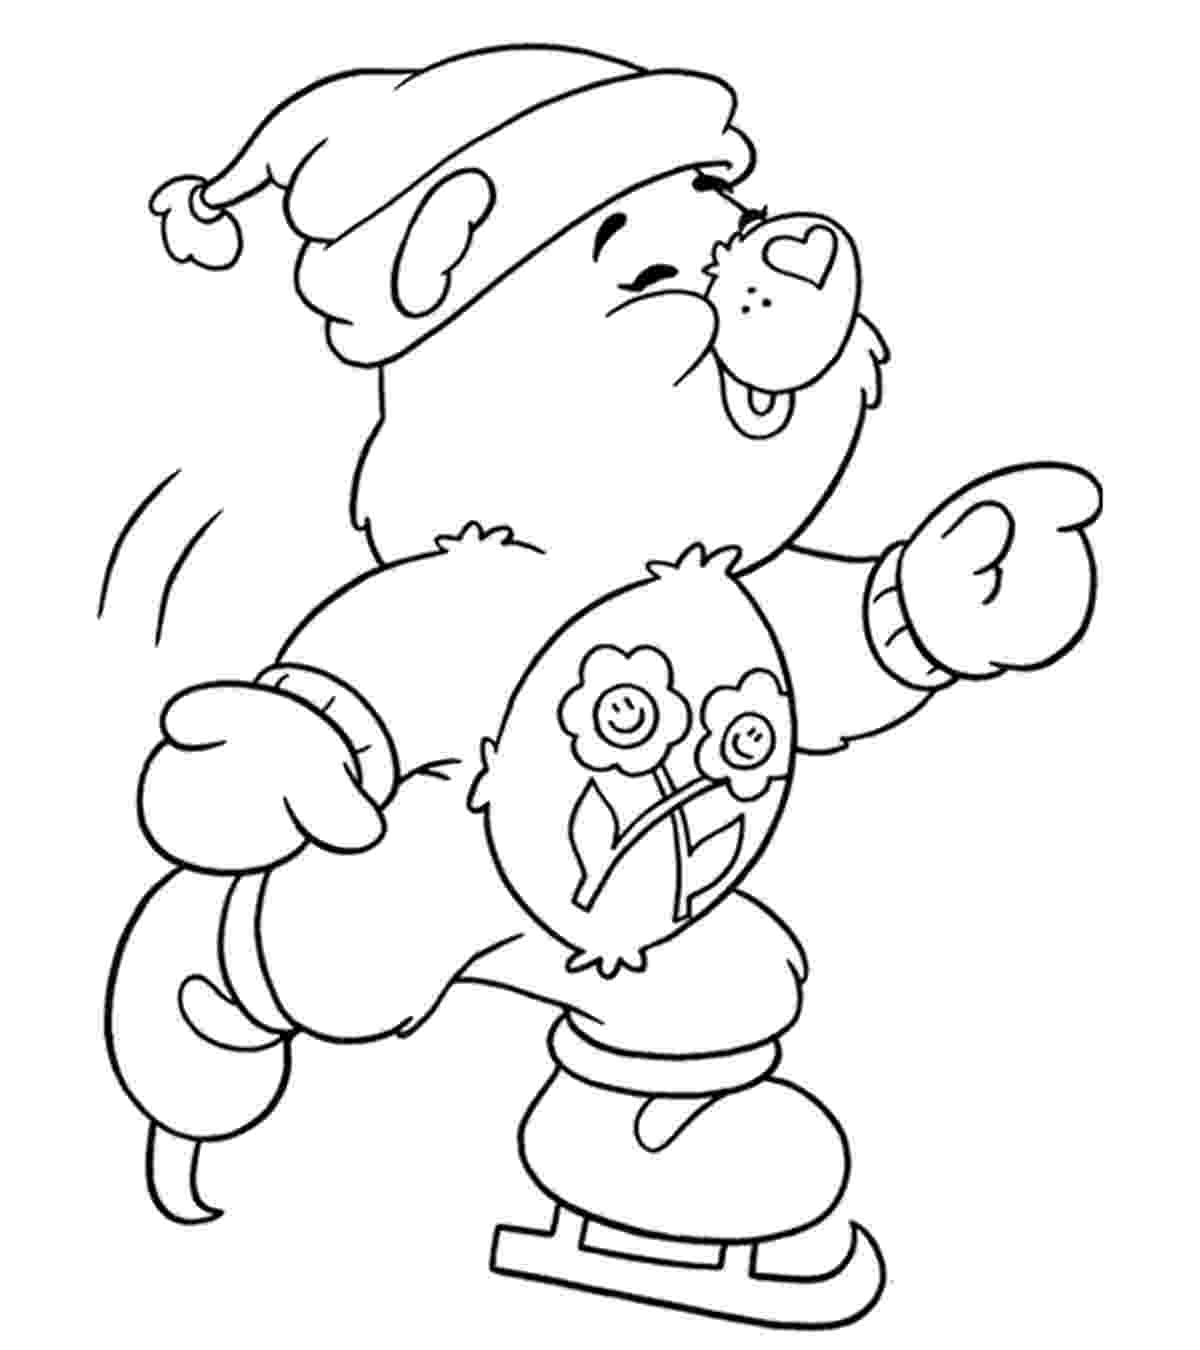 winter coloring pages free printable winter coloring pages for kids winter pages coloring